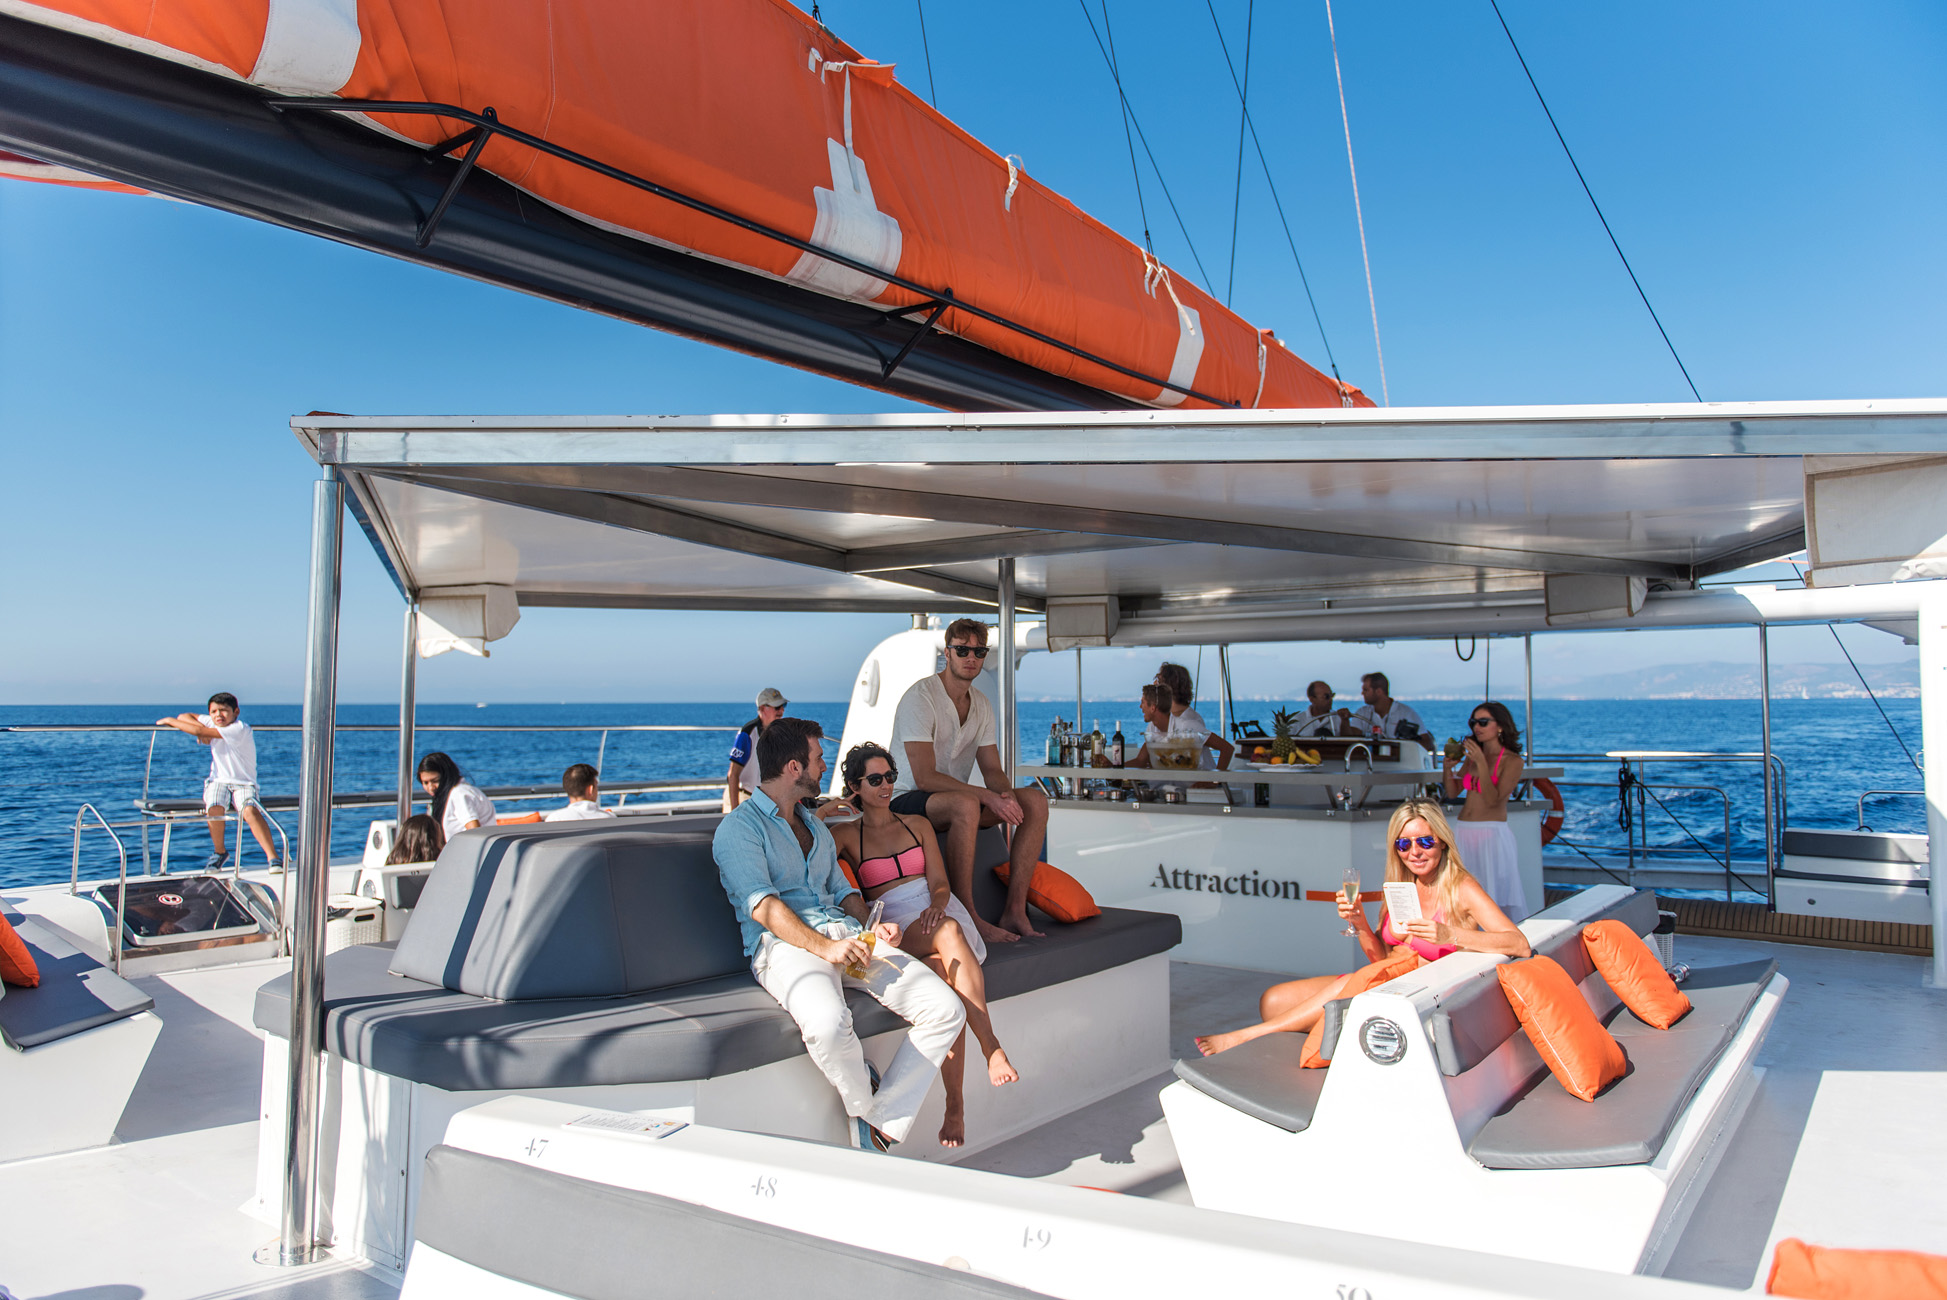 Catamaran sunset excursion en Mallorca